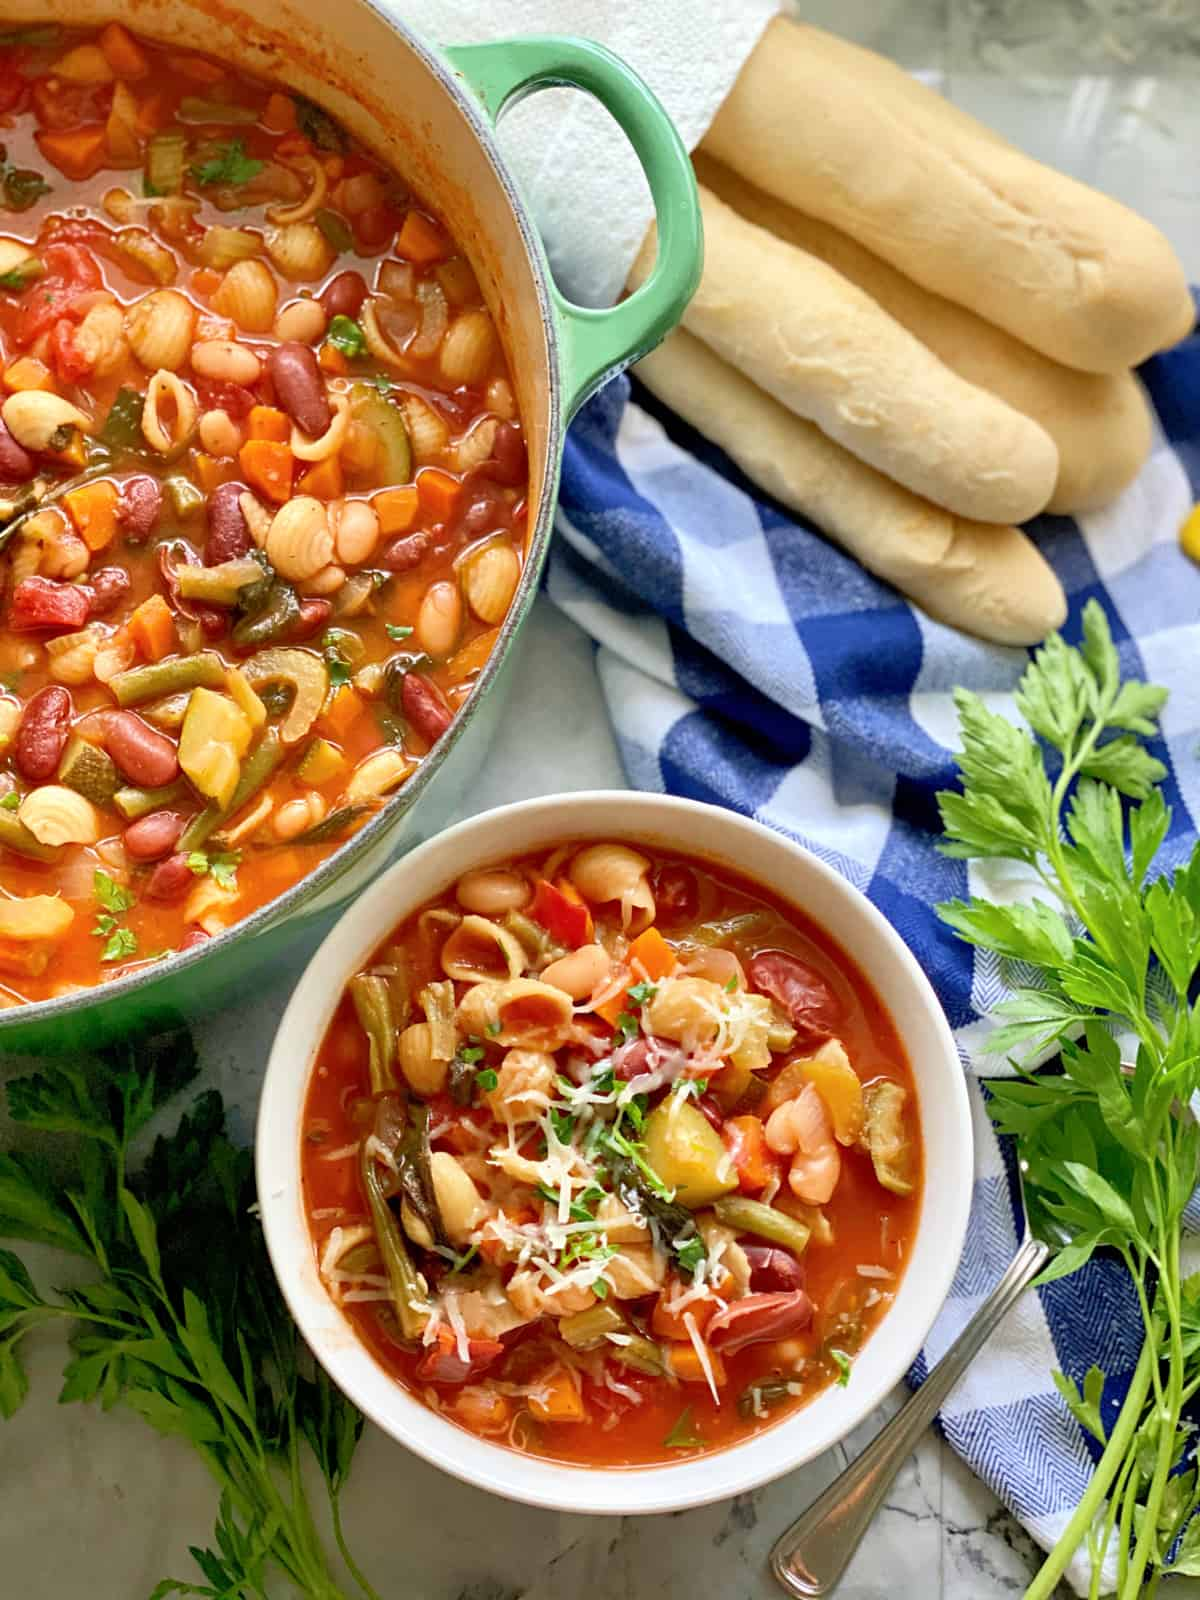 Top view of a large pot filled with minestrone soup with a bowl filled with soup and breasticks next to it.